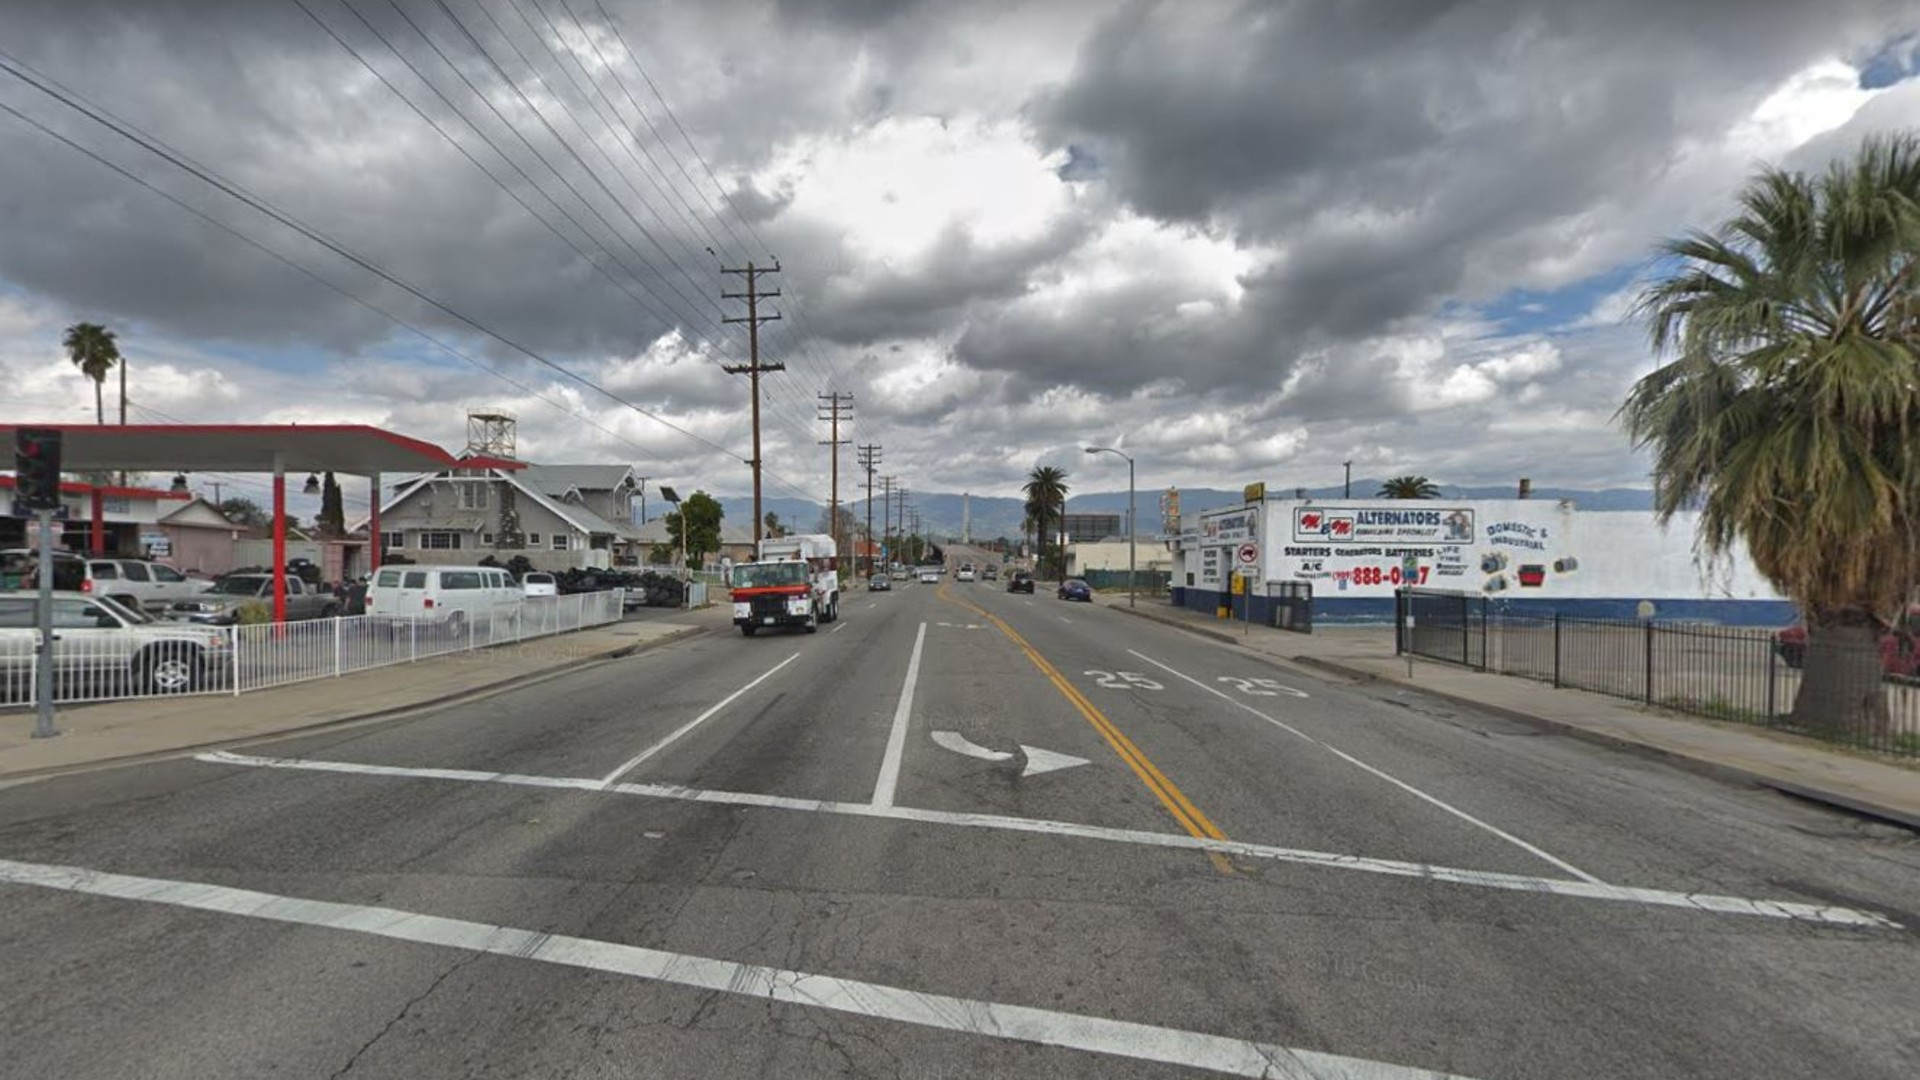 Mt. Vernon Avenue, looking north from Rialto Avenue, as pictured in a Google Street View image.